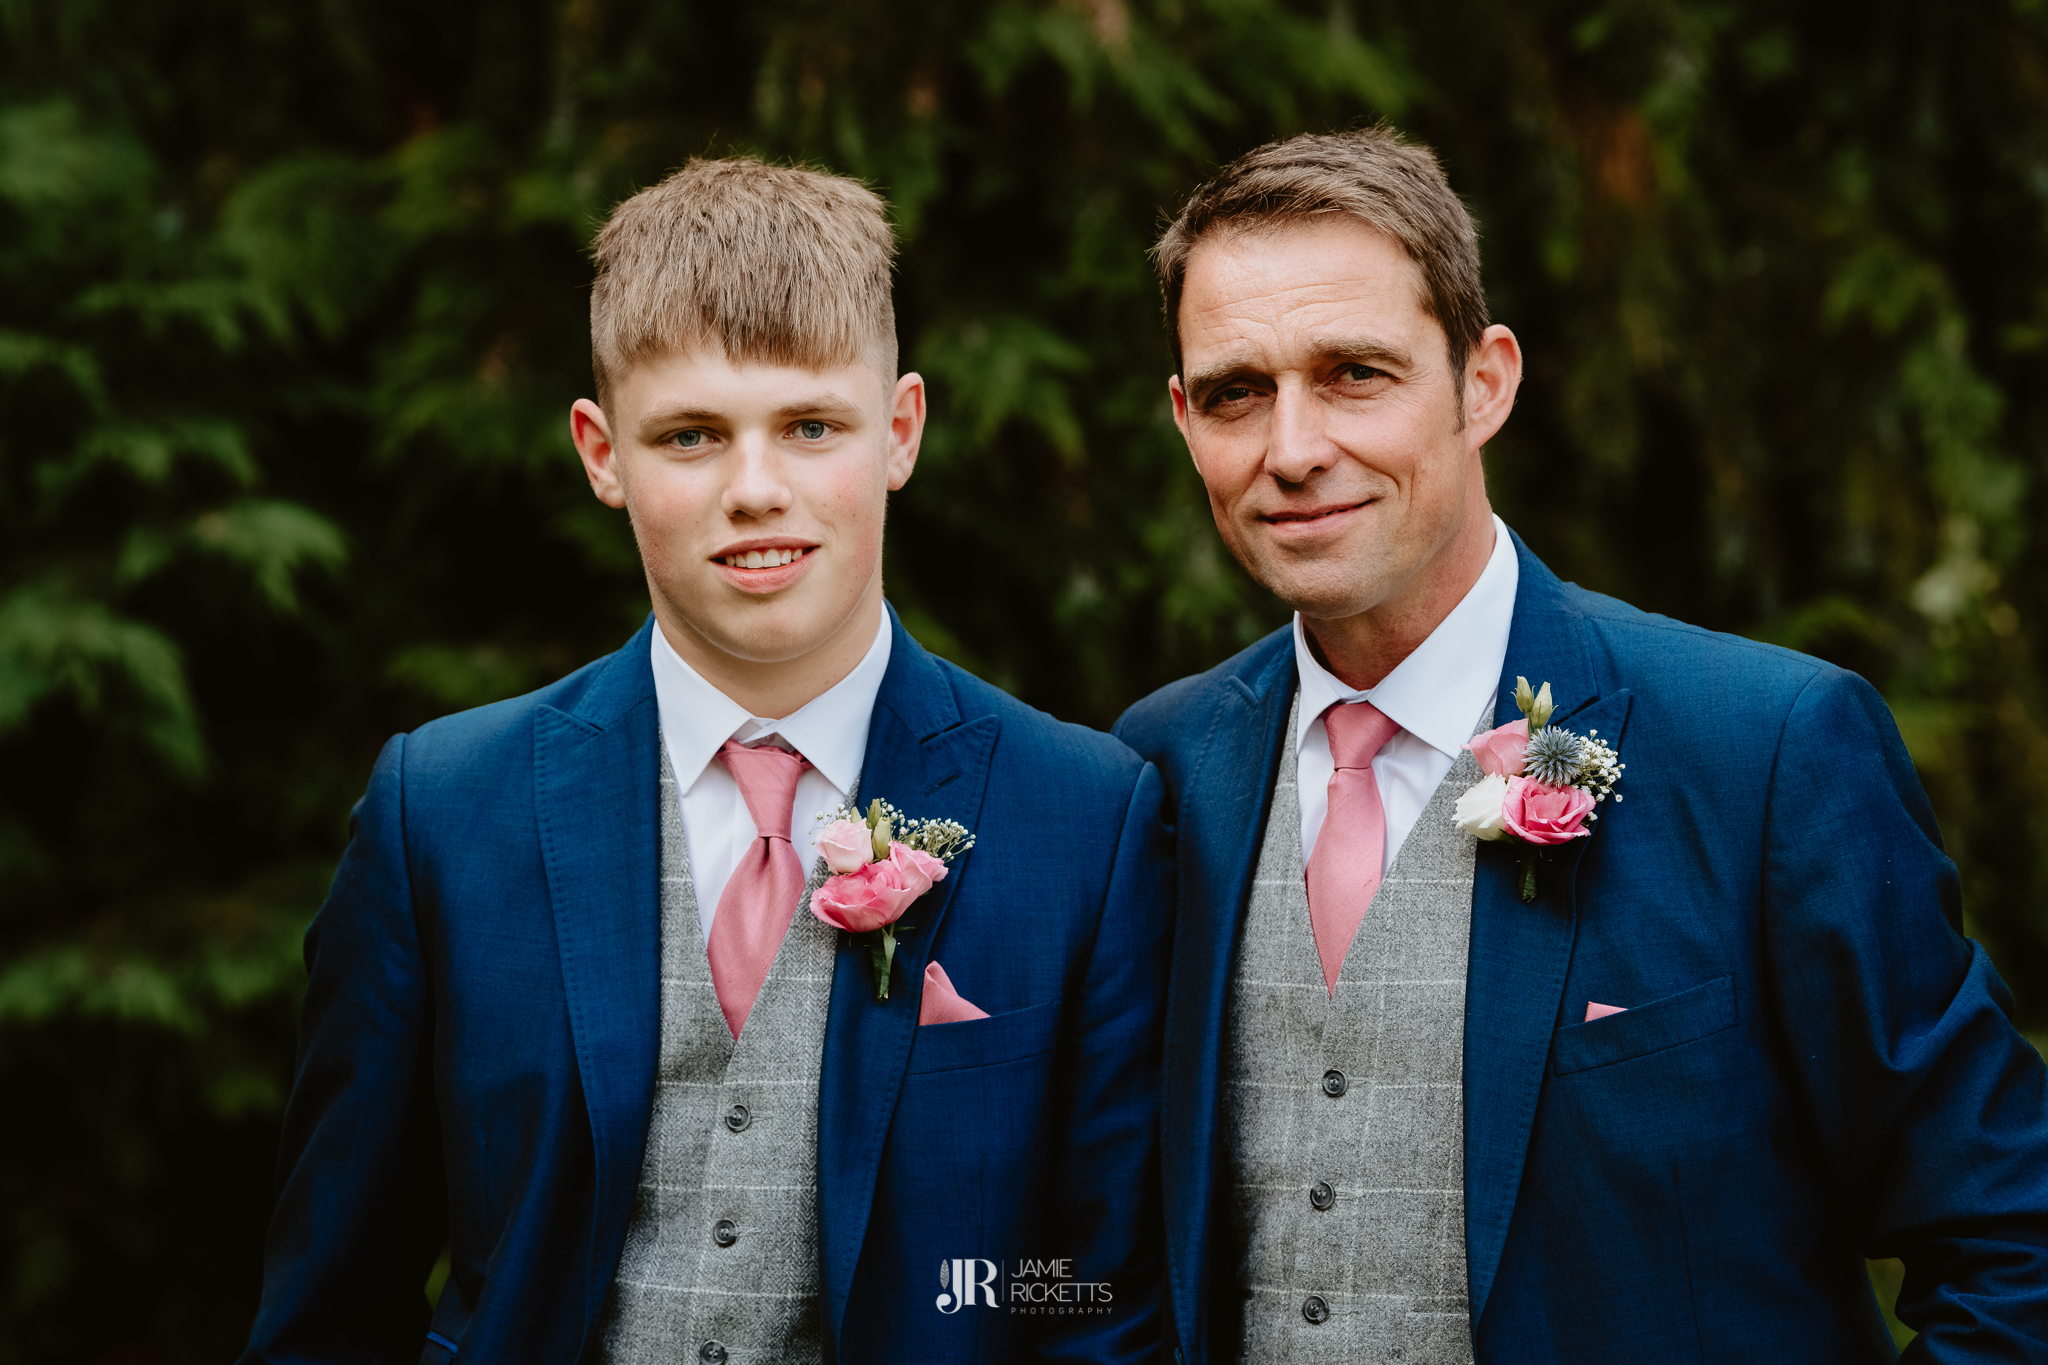 Wroxeter-Hotel-Wedding-Photography-In-Shropshire-By-Shropshire-Wedding-Photographer-Jamie-Ricketts-102.JPG